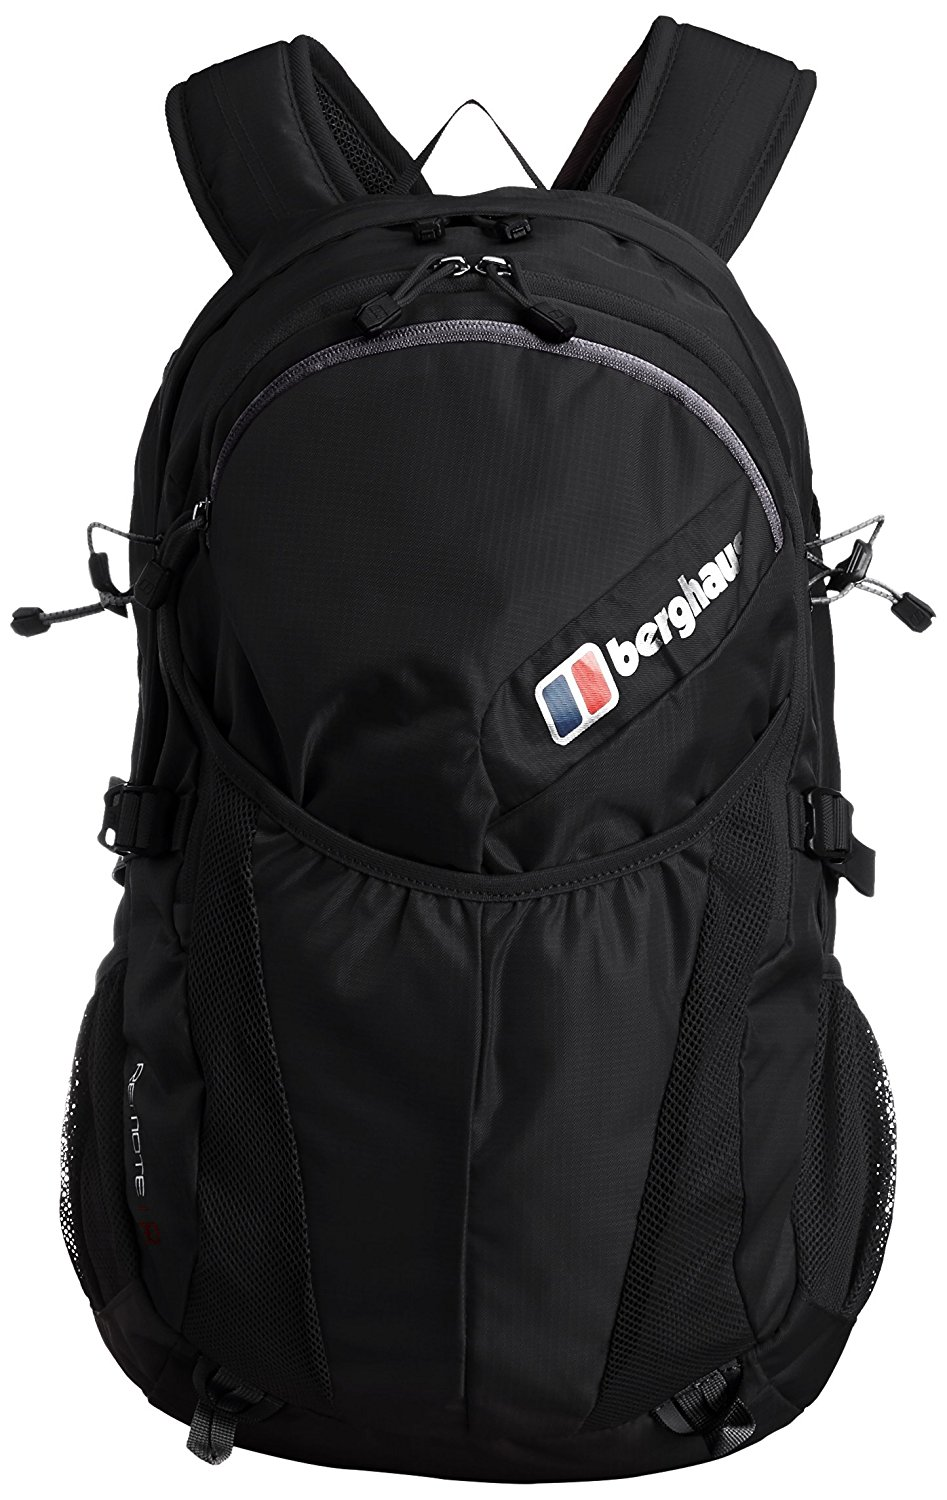 good texture best wholesaler on wholesale Buy BERGHAUS Vapour 32 Rucksack in Cheap Price on Alibaba.com